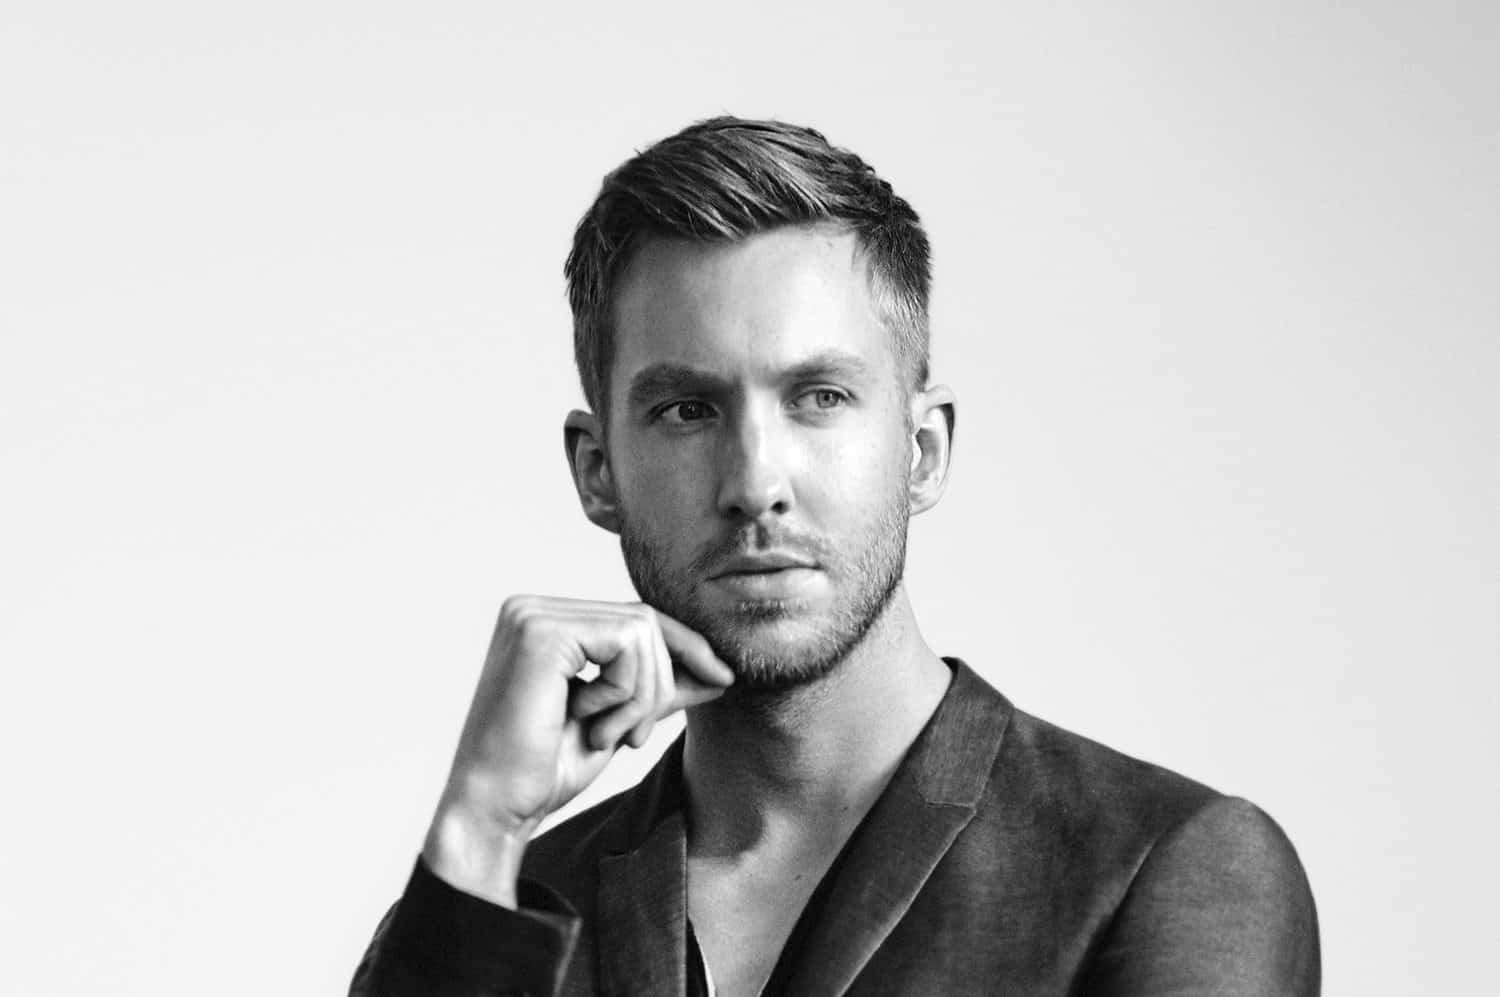 CALVIN HARRIS REVEALS UPCOMING COLLABORATION WITH YOUNG THUG, ARIANA GRANDE, & PHARRELL WILLIAMS